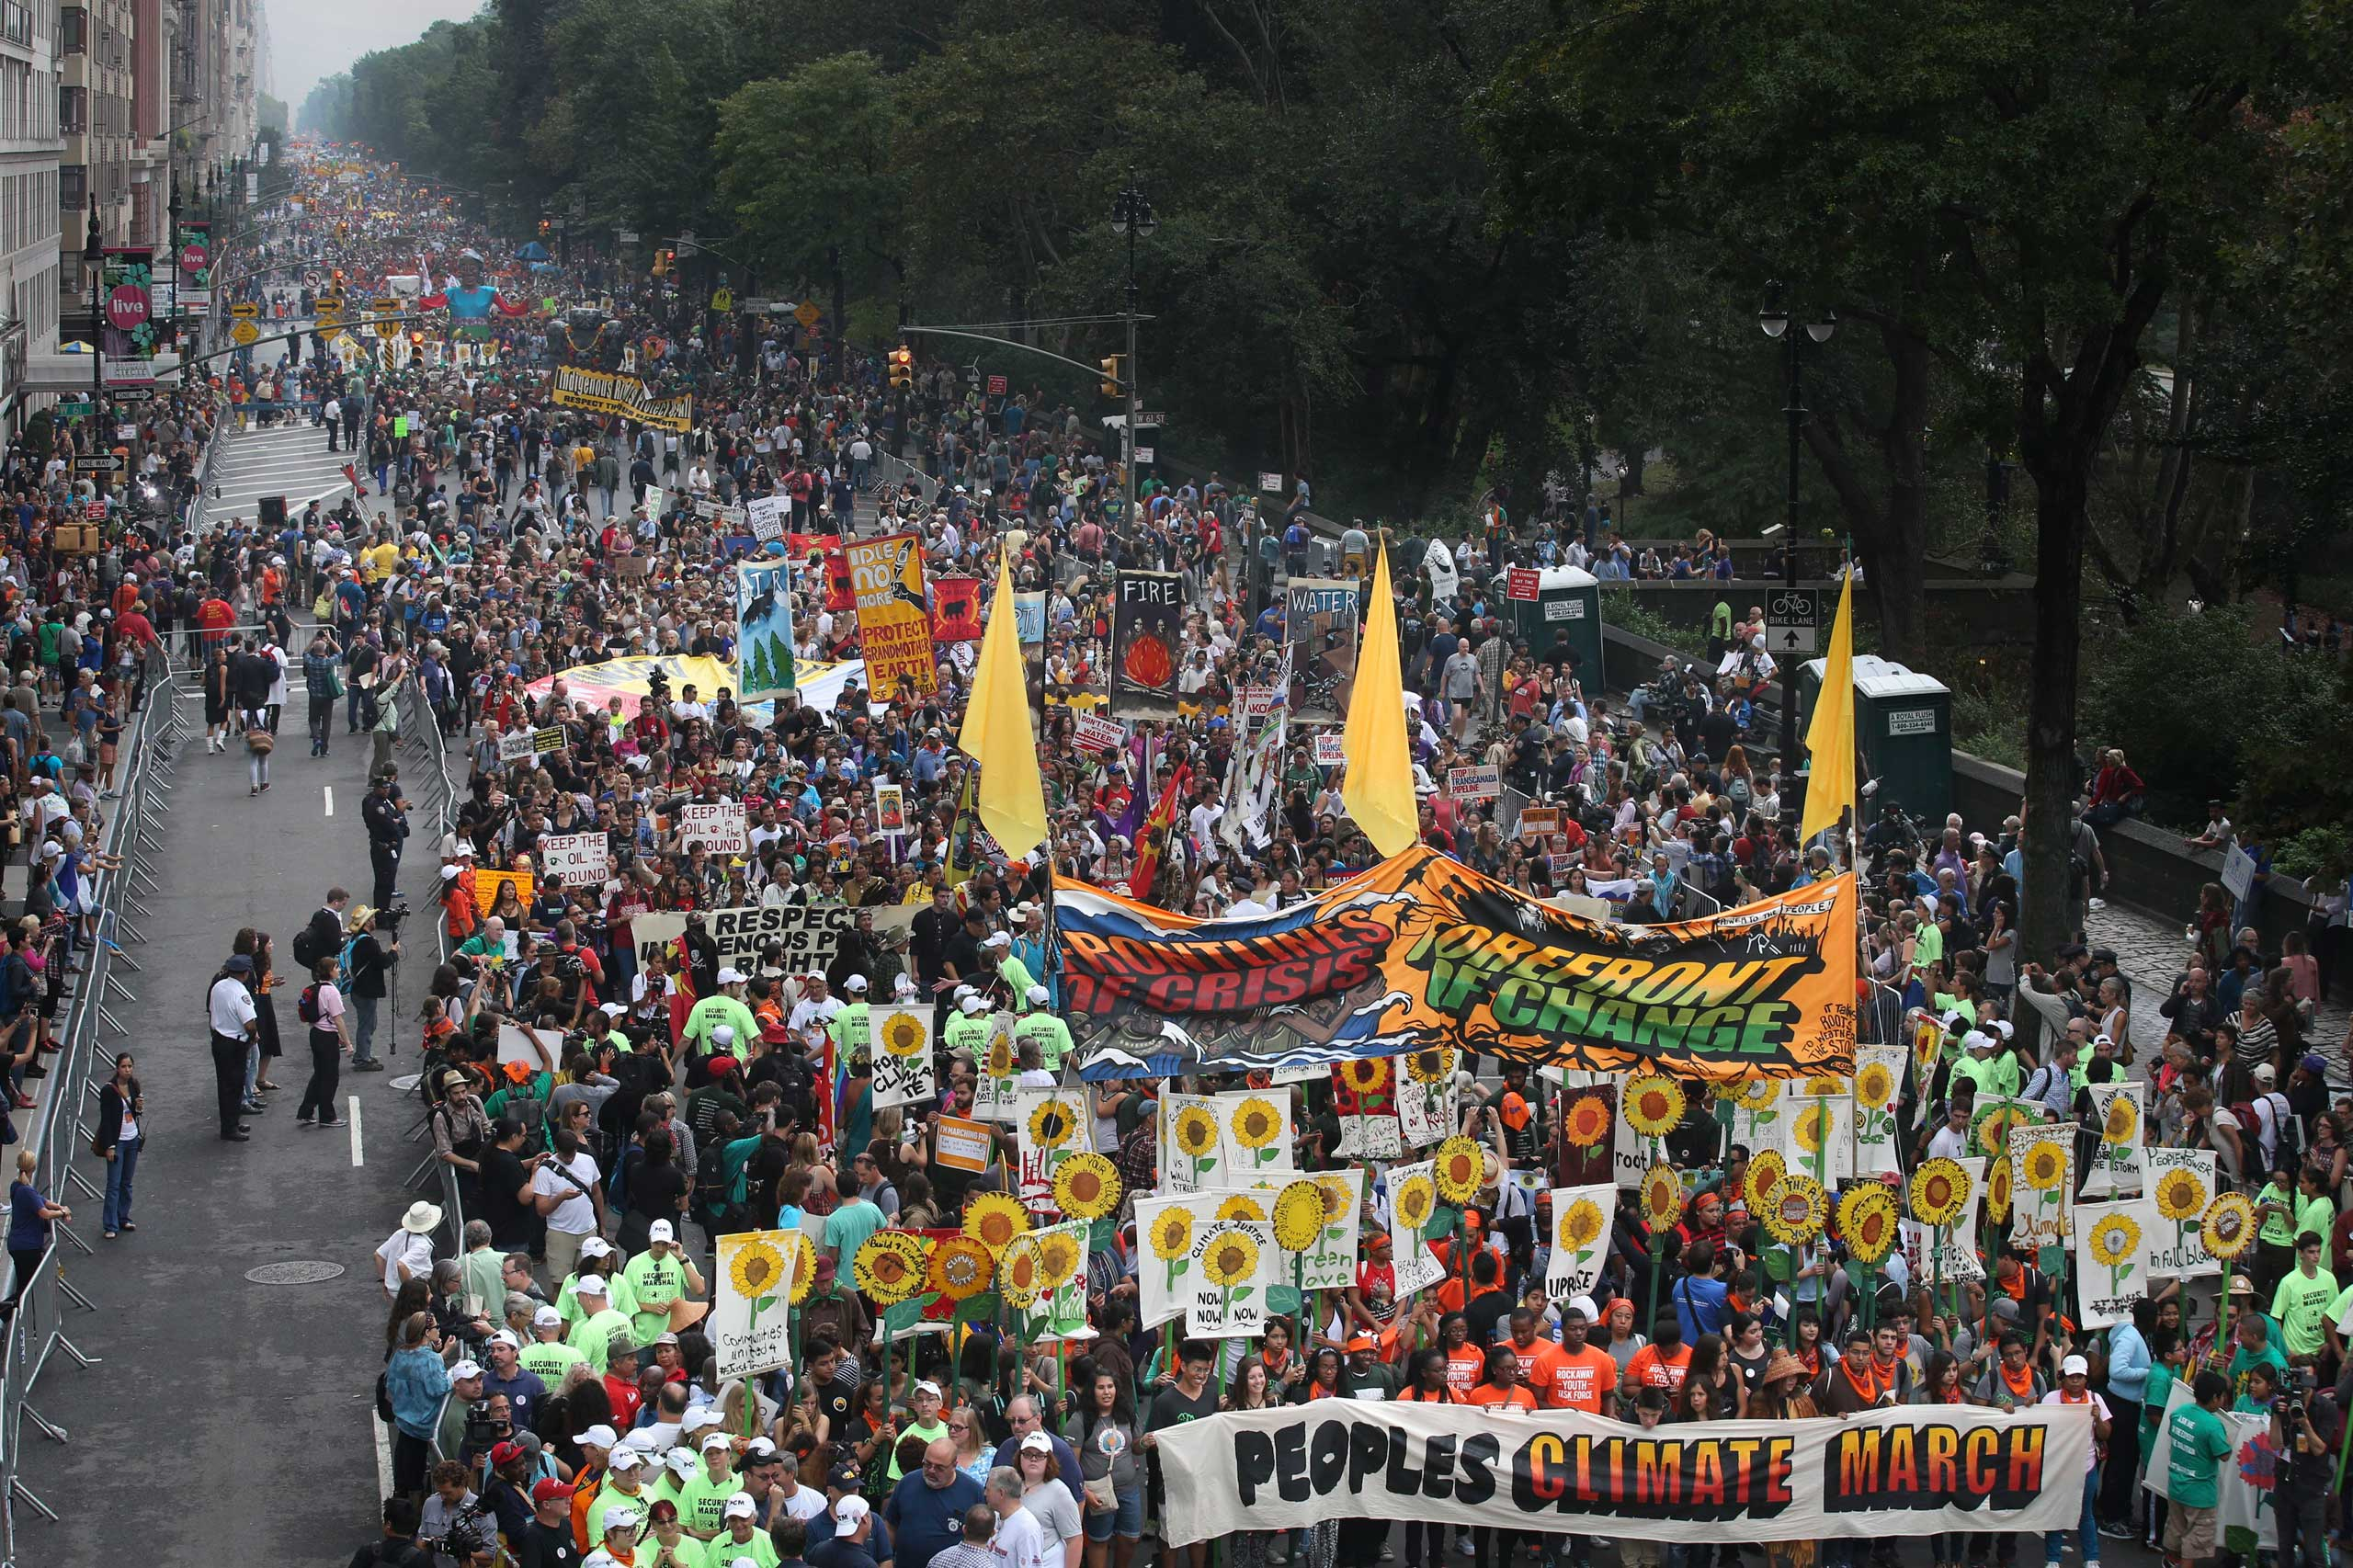 Hundreds of thousands of protesters take part in the People's Climate March in Manhattan, in New York City, on Sept. 21, 2014